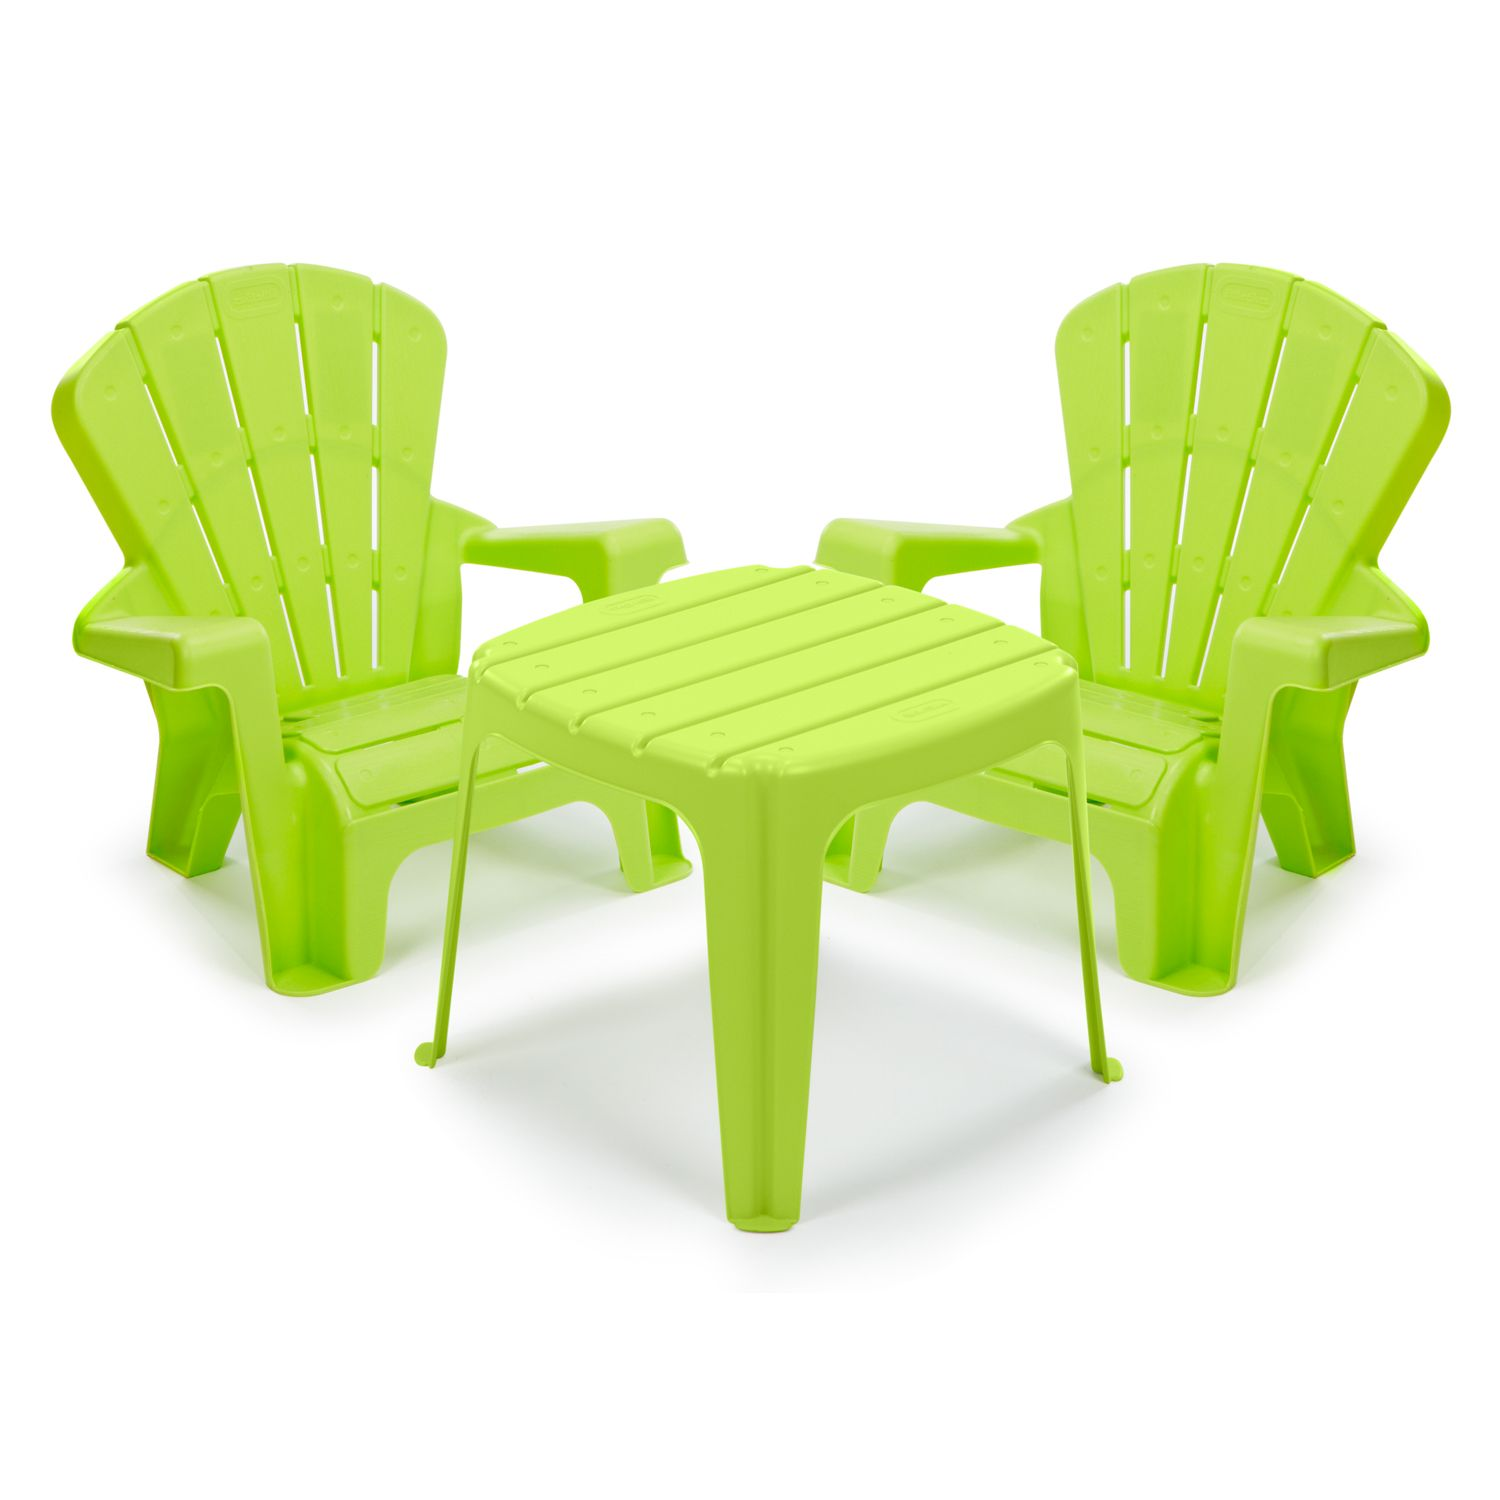 Garden Table And Chairs Set Part - 28: Little Tikes Garden Table U0026 Chairs Set